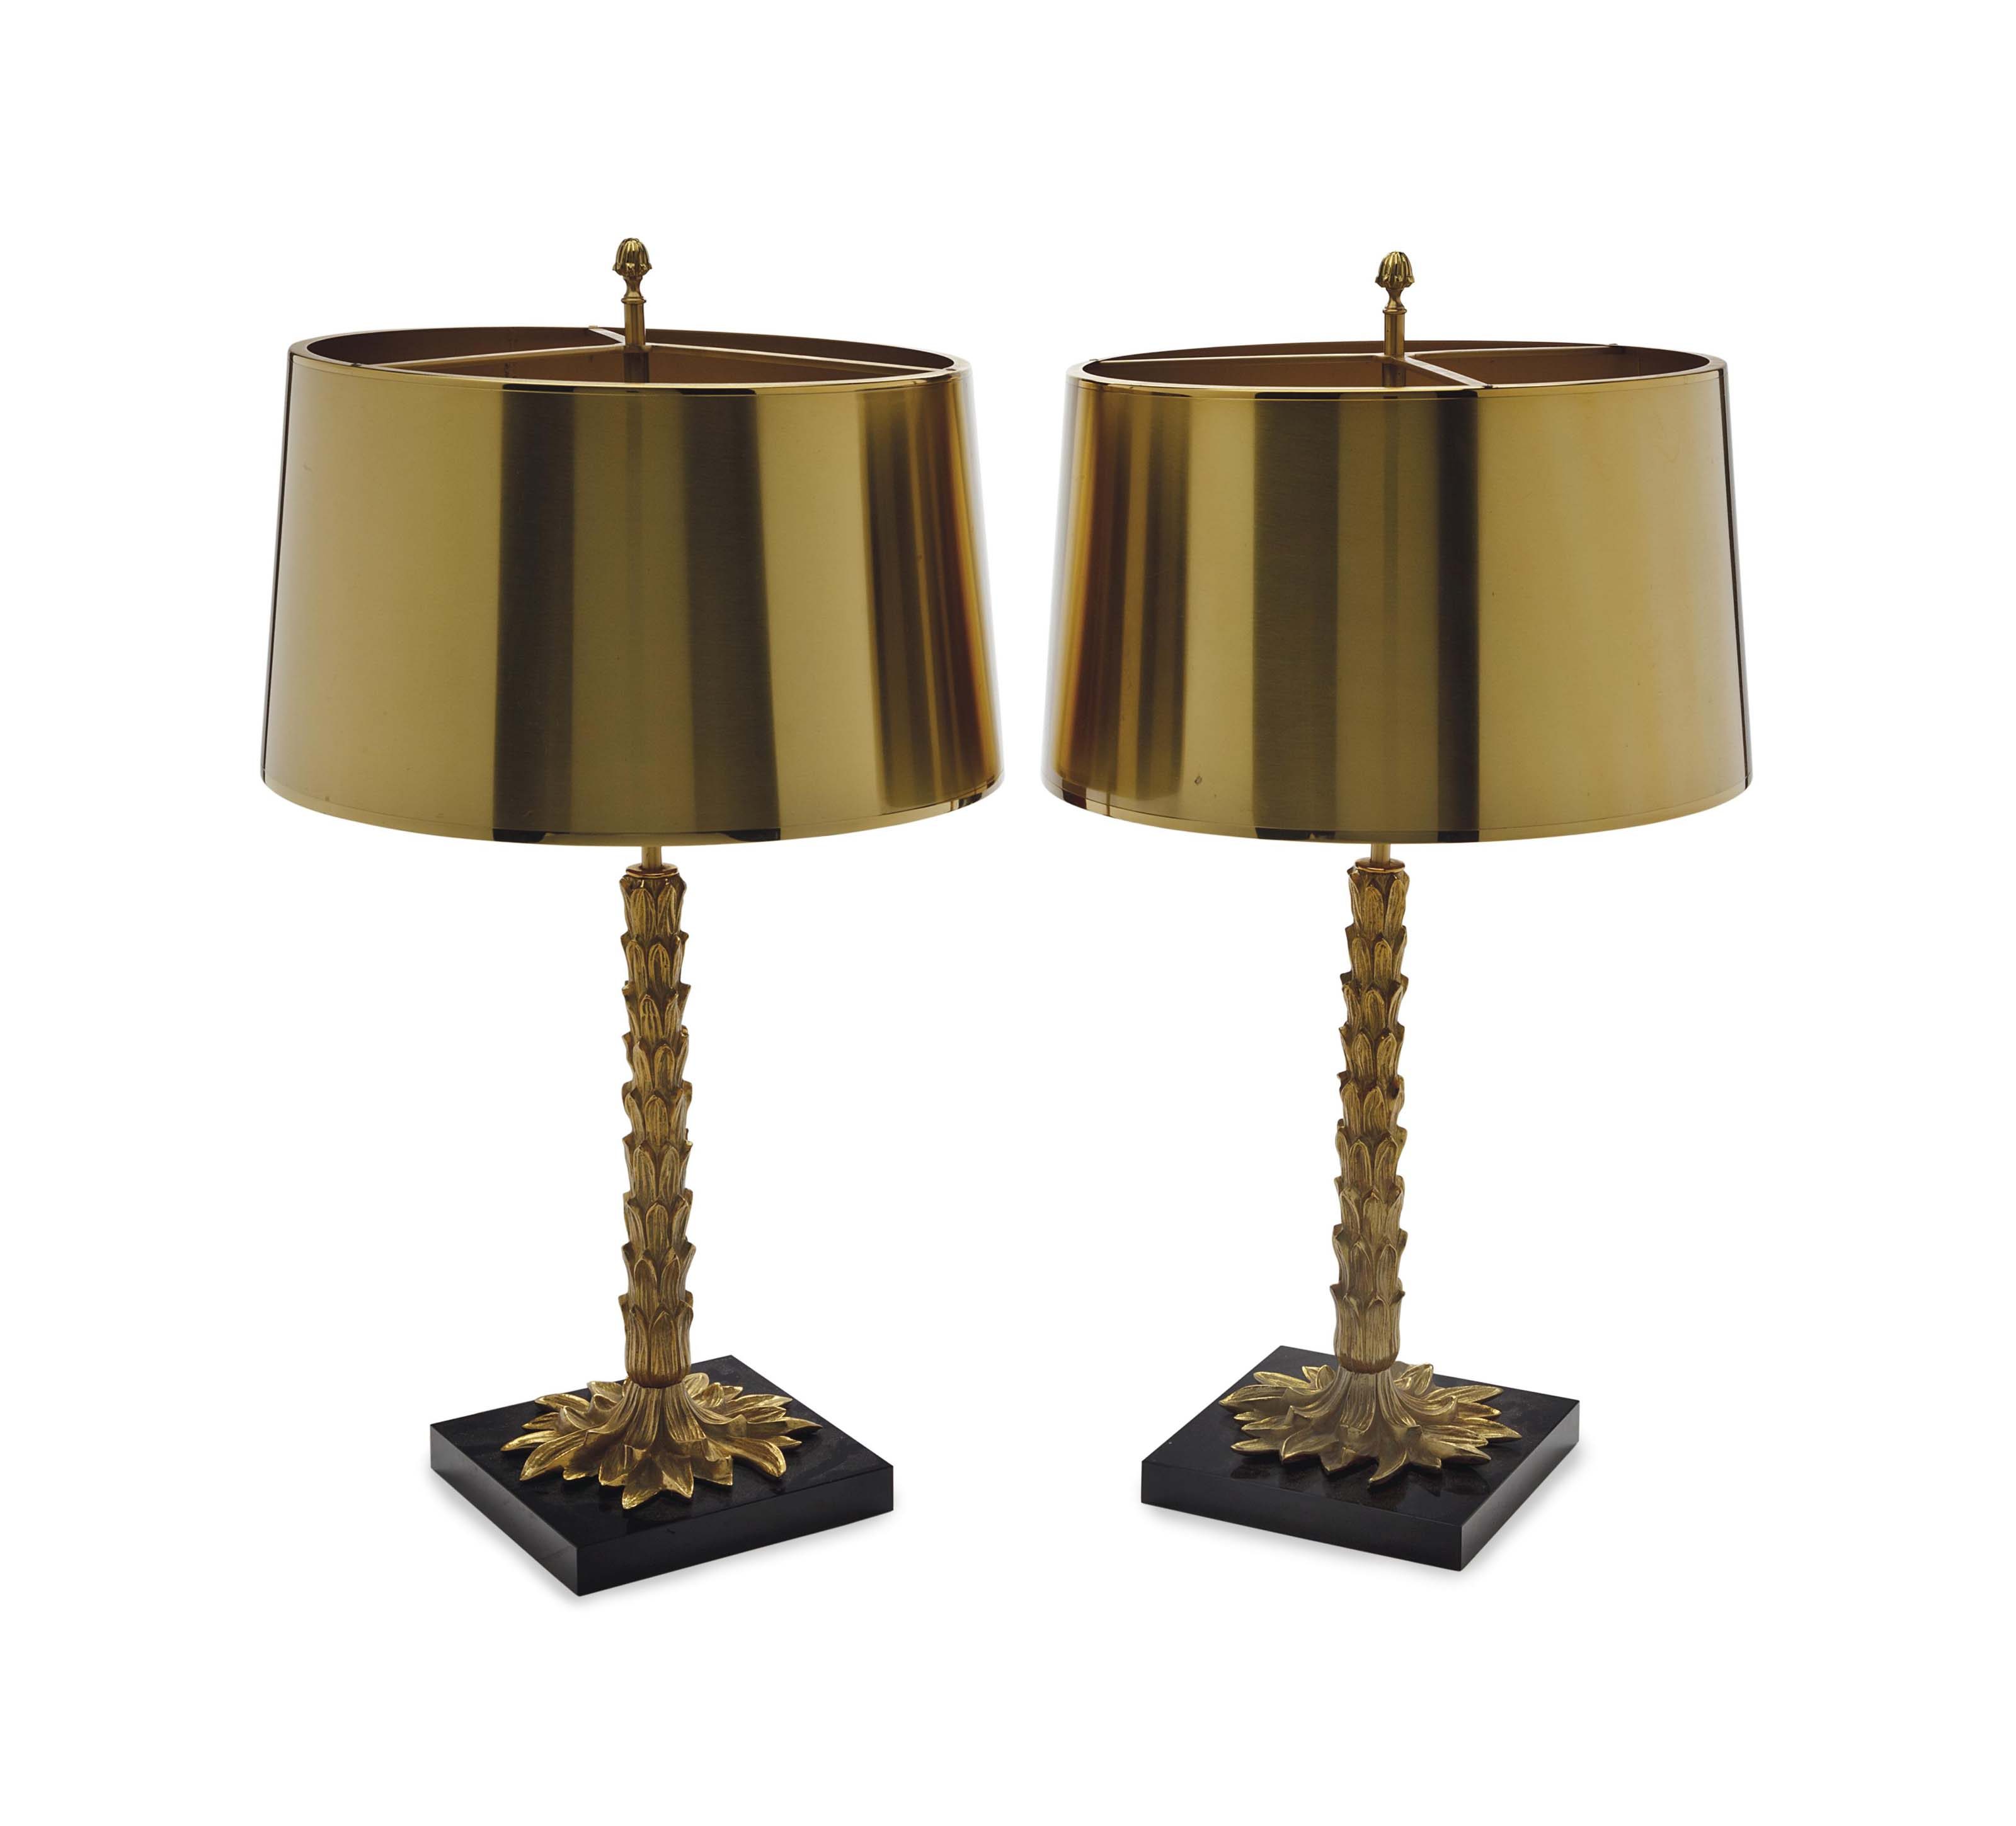 A PAIR OF GILT METAL PALM TREE FORM TABLE LAMPS WITH GILT METAL SHADES,